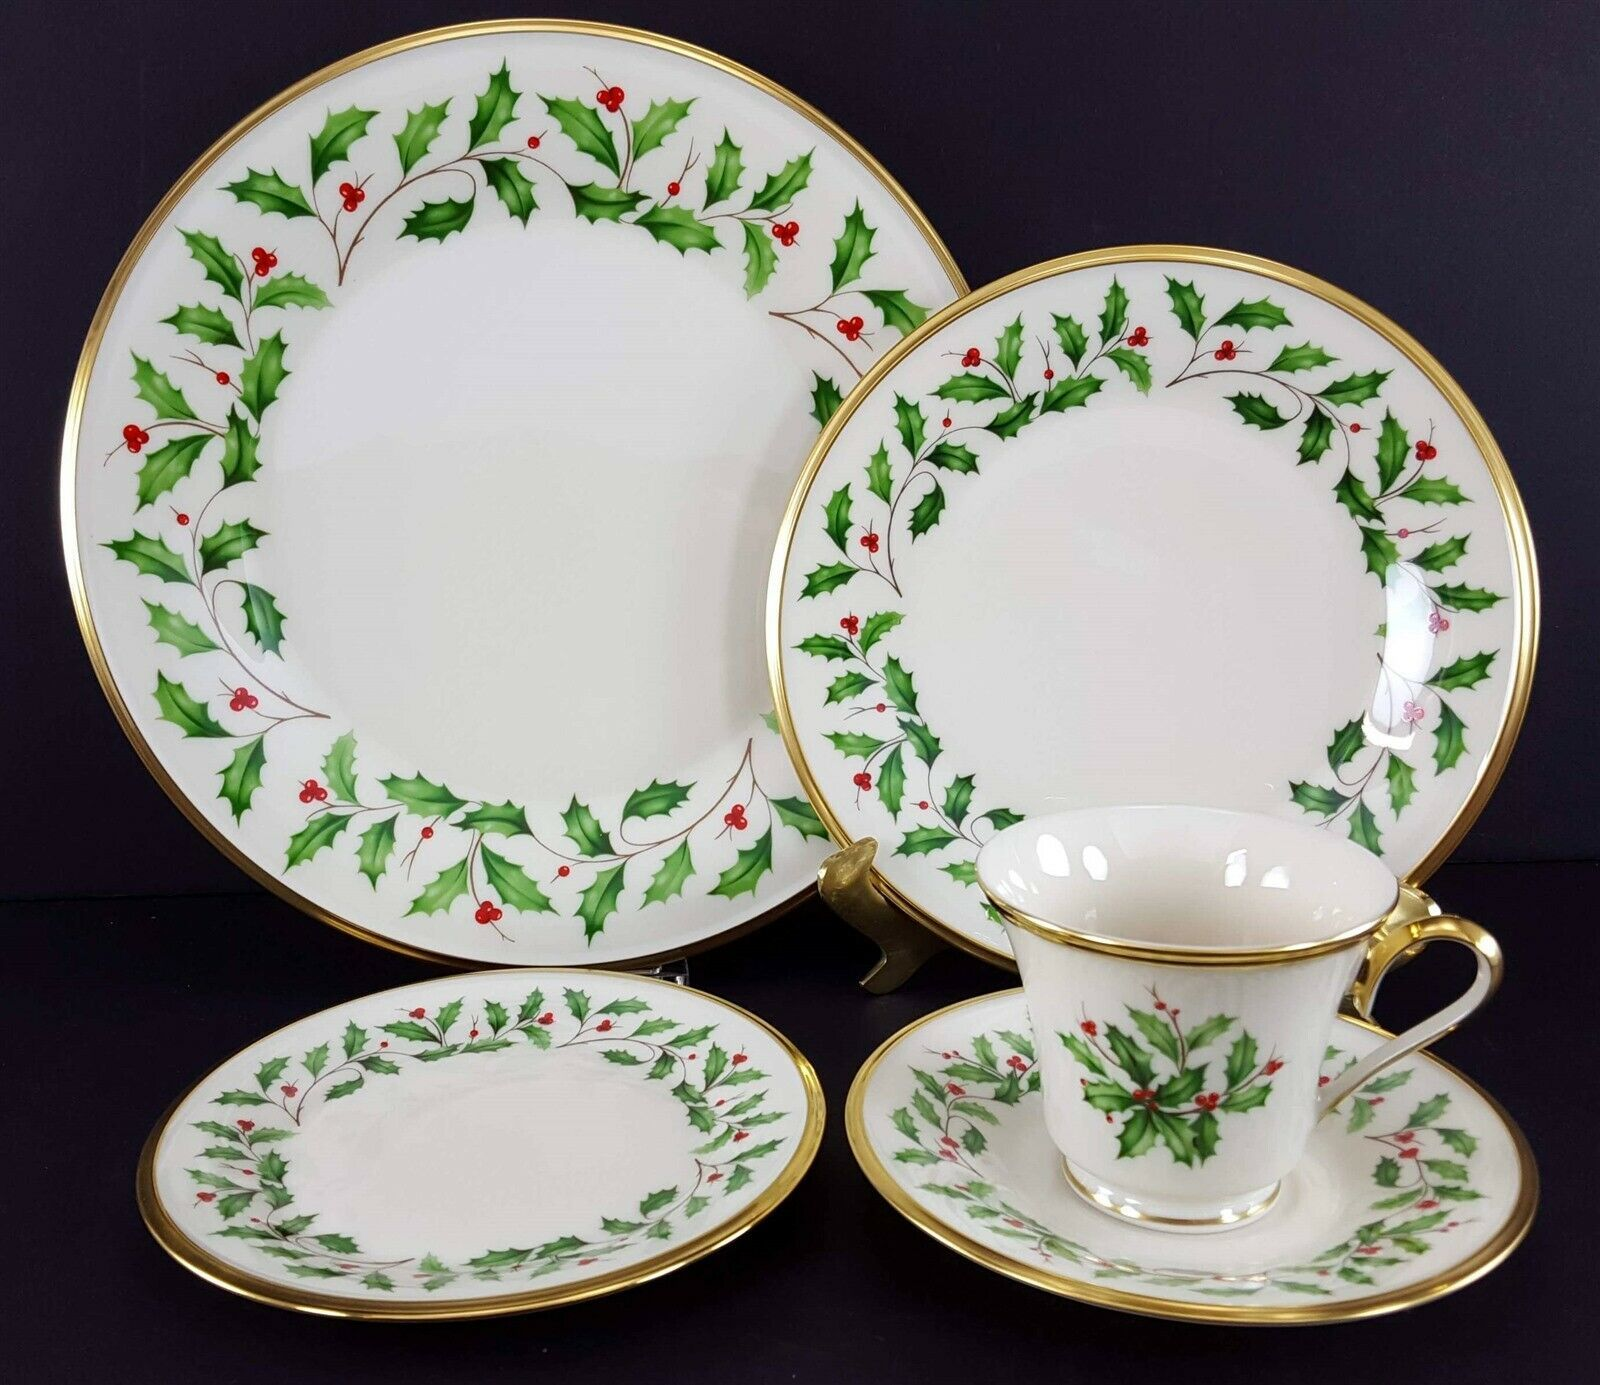 LENOX China Holiday Dimension 5 Piece Place Setting Dinnerware USA